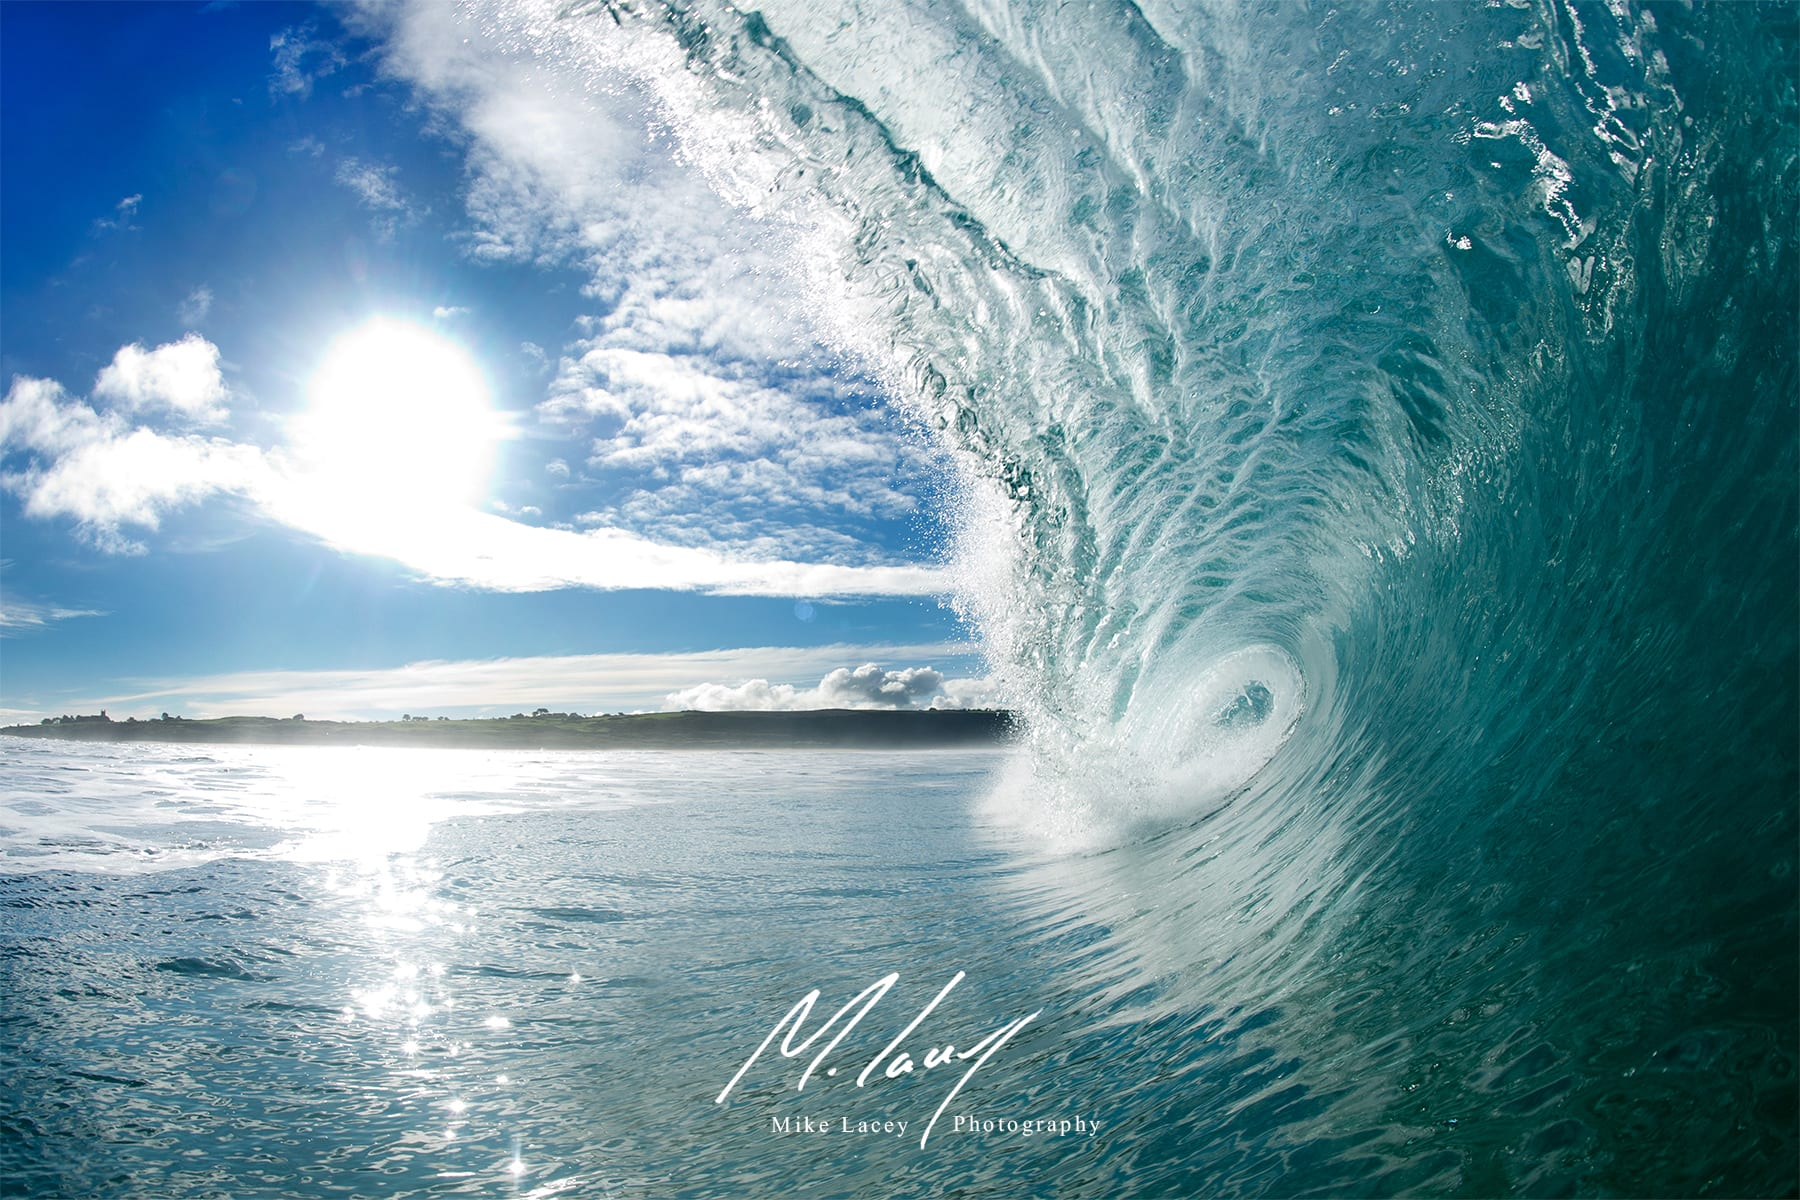 waves surf art gallery porthleven mike lacey photography